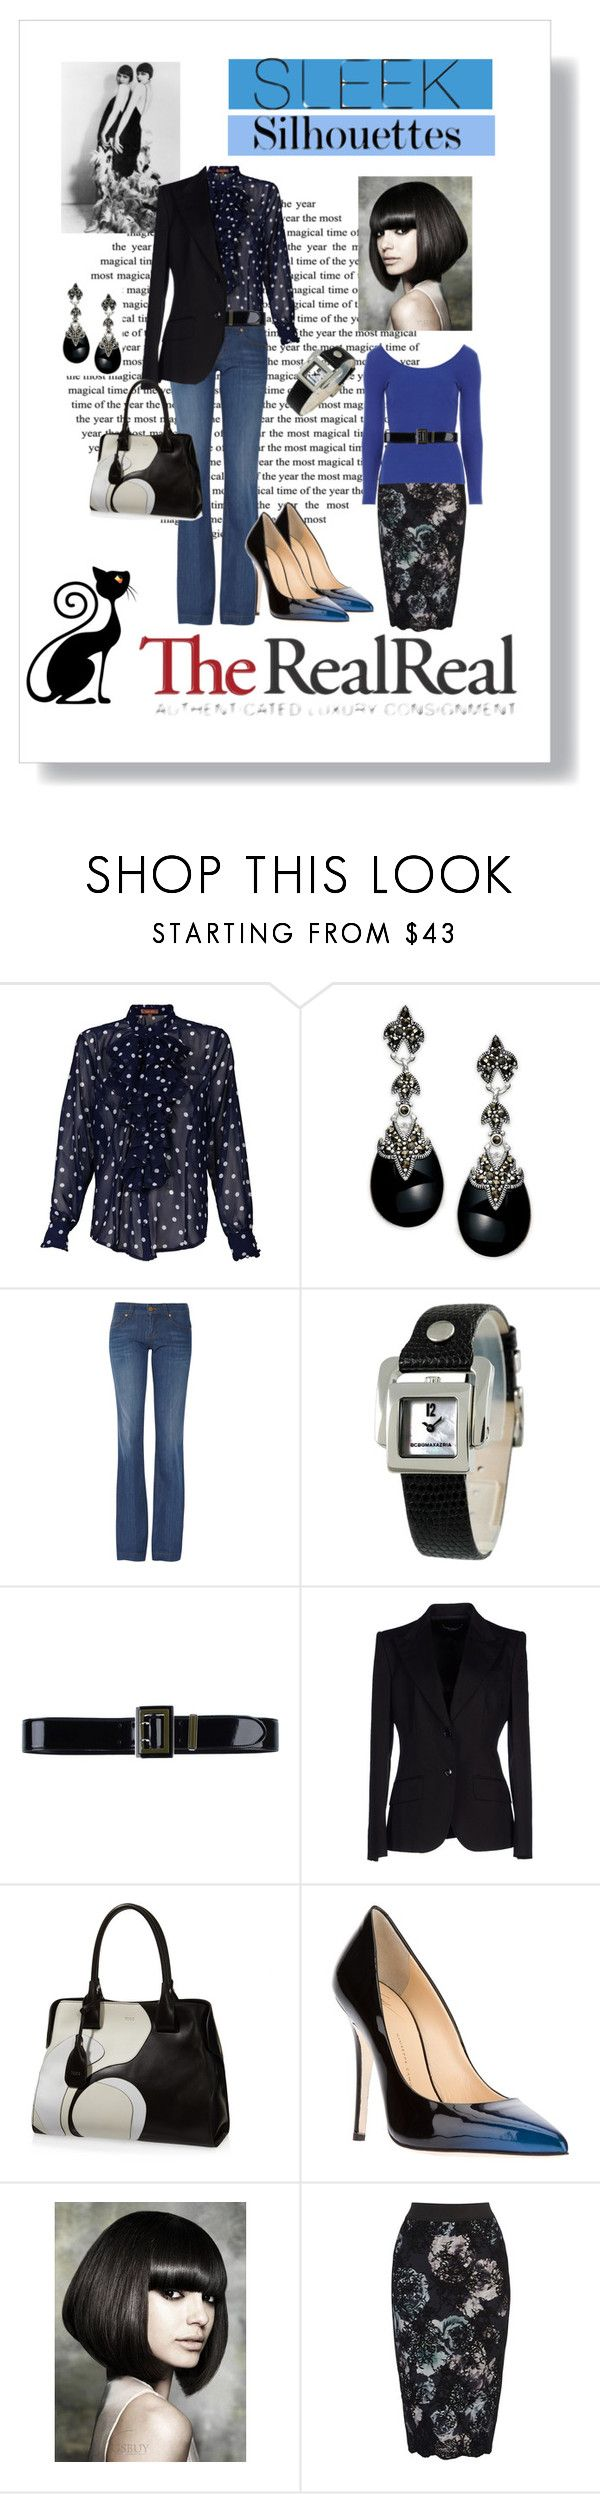 """Spring Trends With The RealReal: Contest Entry"" by dawn-lindenberg ❤ liked on Polyvore featuring Jolie Moi, Genevieve & Grace, Gucci, BCBGMAXAZRIA, Prada, Dolce&Gabbana, Tod's, Giuseppe Zanotti, Coast and Dorothy Perkins"